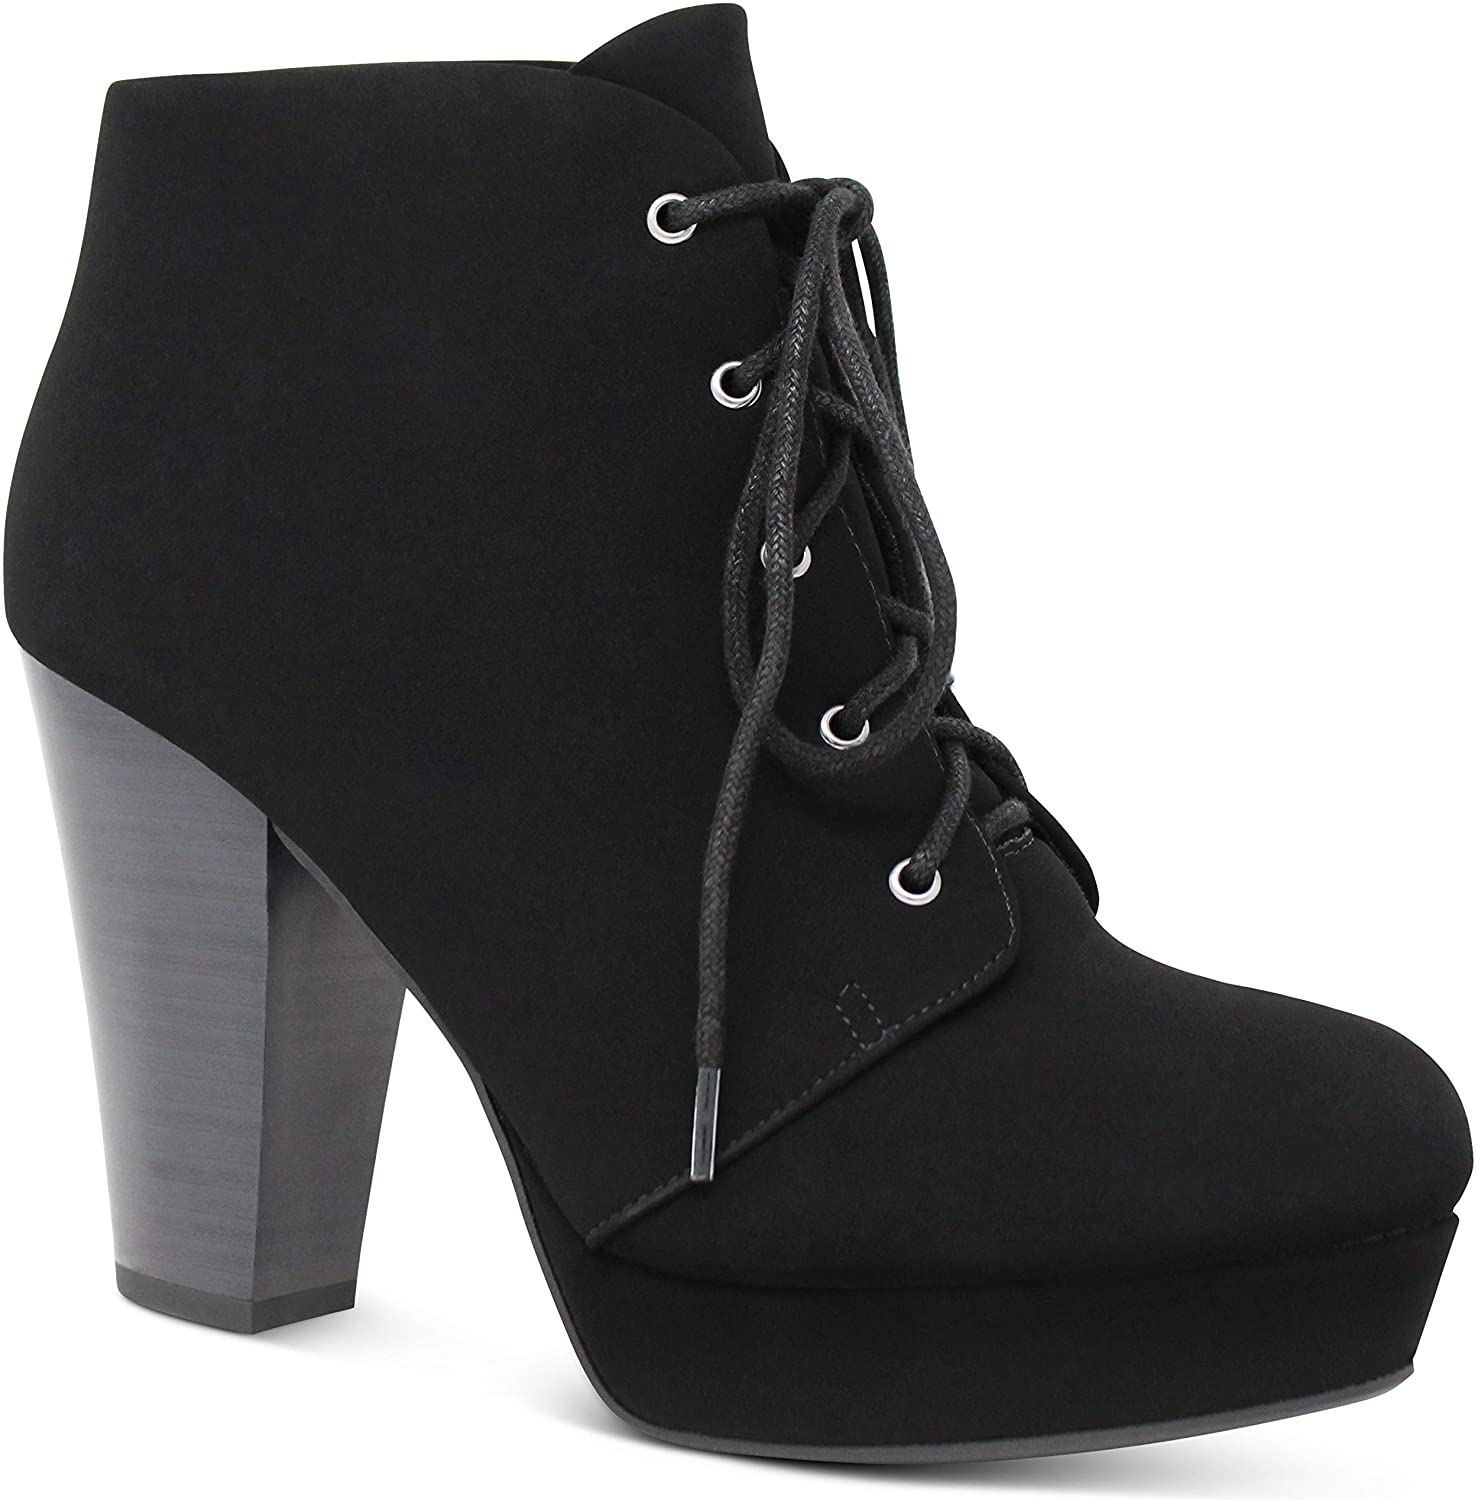 Marco Republic Budapest Womens Chunky Block Stacked Heels Platform Pumps Booties Boots